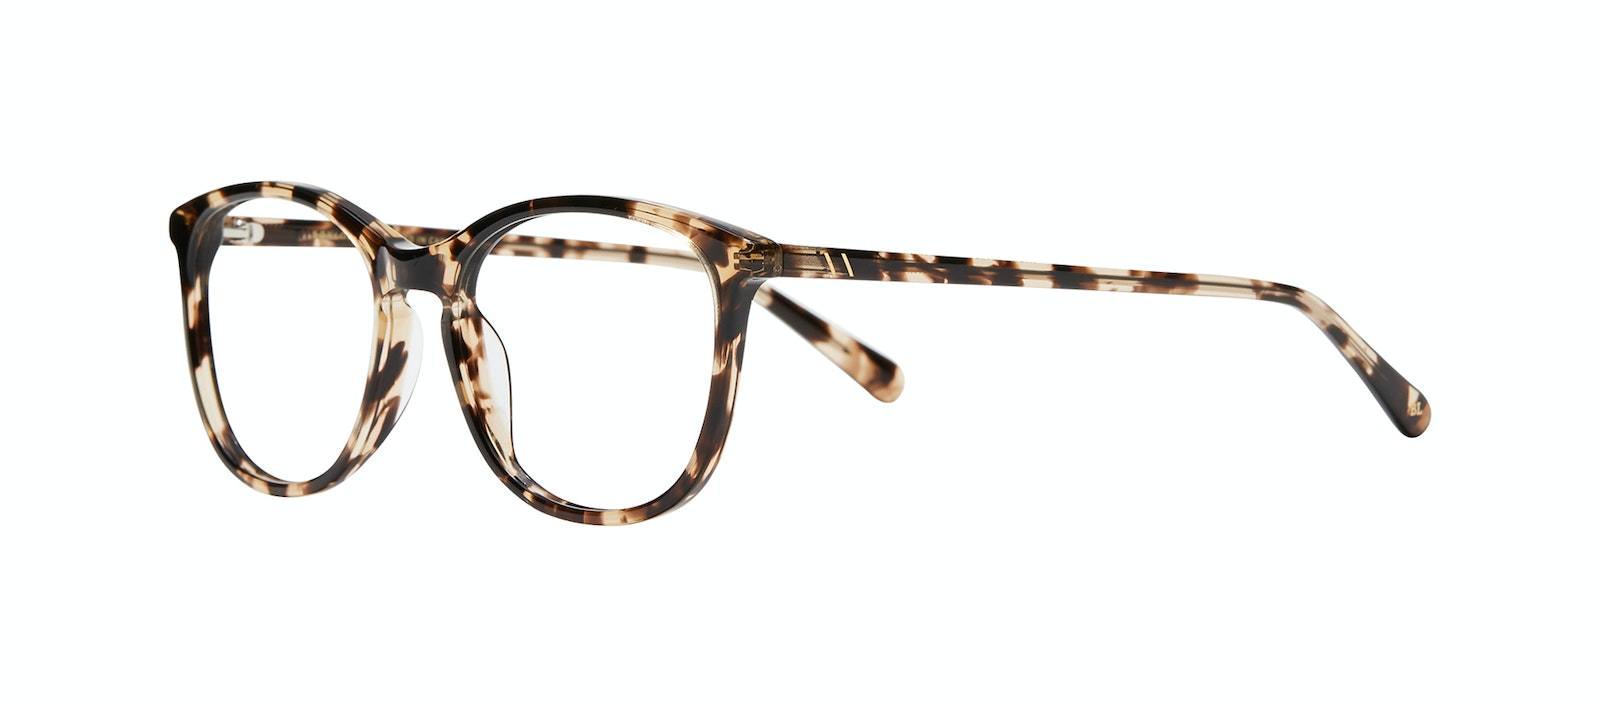 Affordable Fashion Glasses Rectangle Square Round Eyeglasses Women Nadine XL Snake Skin Tilt